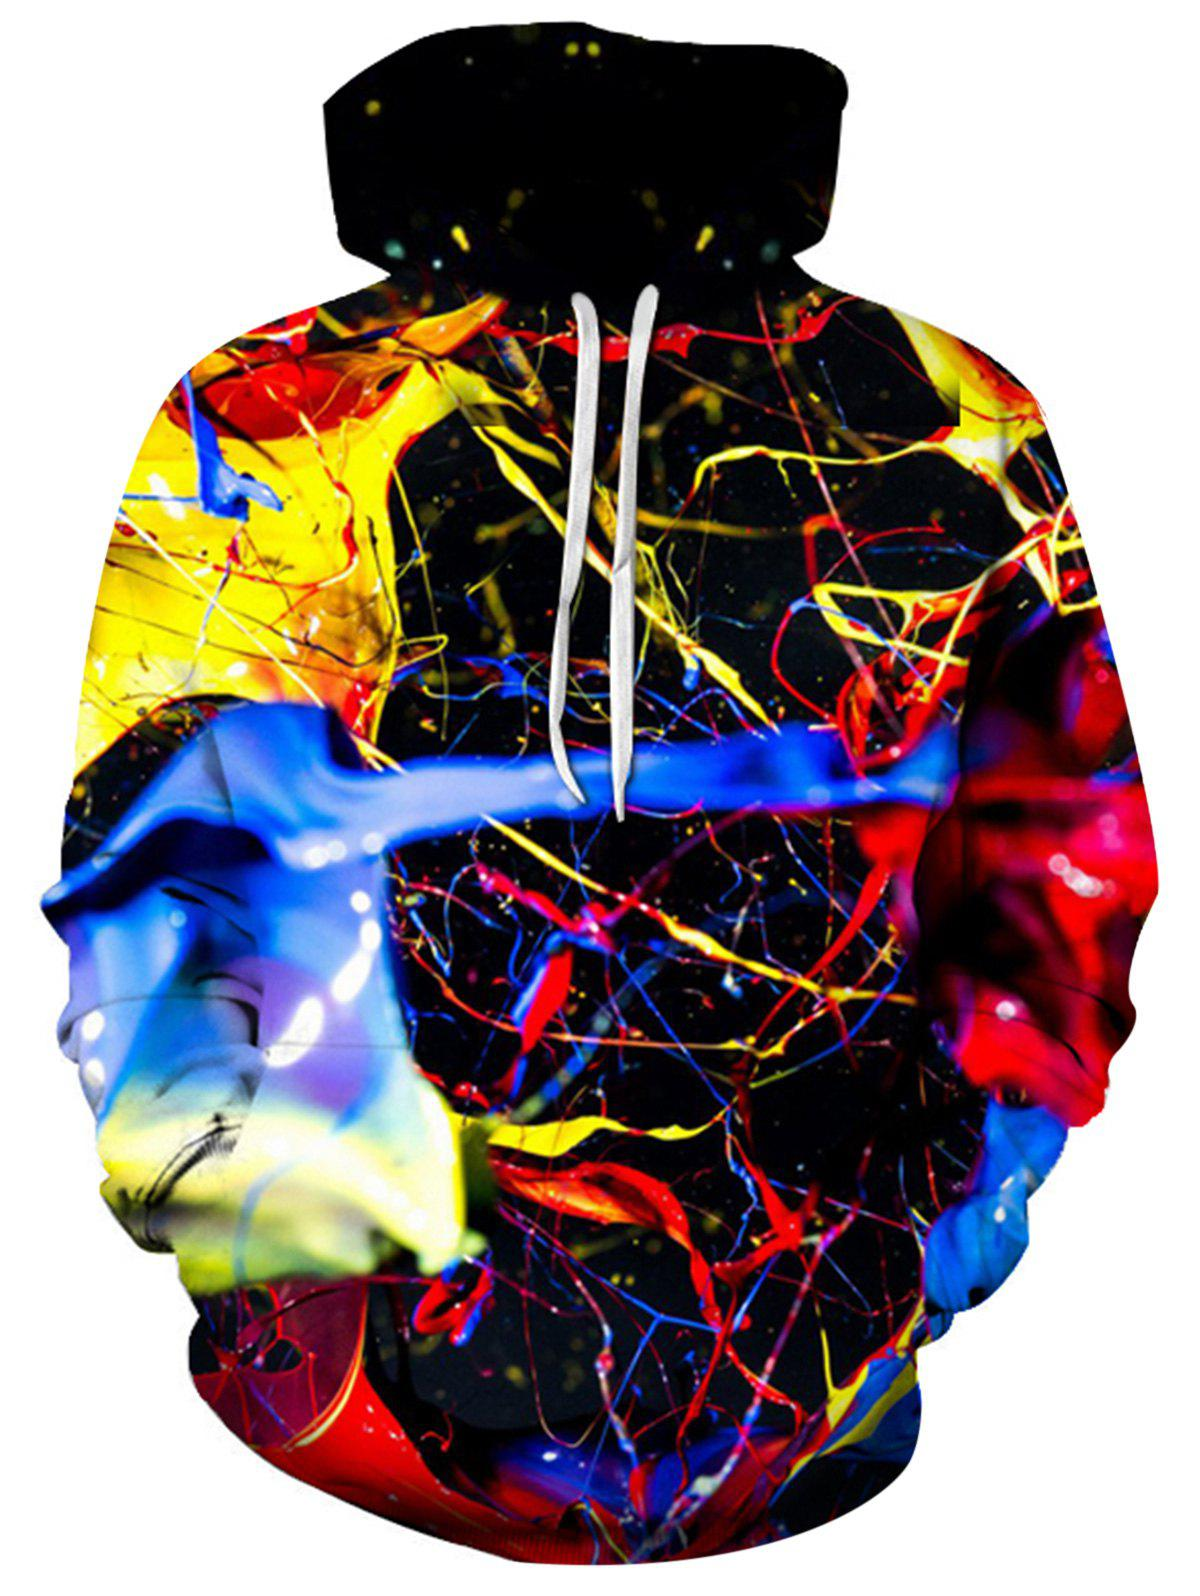 Colorful Splatter Paint 3D Print Pullover HoodieMEN<br><br>Size: L; Color: COLORMIX; Material: Cotton,Polyester; Clothes Type: Hoodie; Shirt Length: Regular; Sleeve Length: Full; Style: Fashion; Patterns: 3D,Print; Thickness: Regular; Occasion: Casual ,Daily Use,Going Out; Weight: 0.4800kg; Package Contents: 1 x Hoodie;